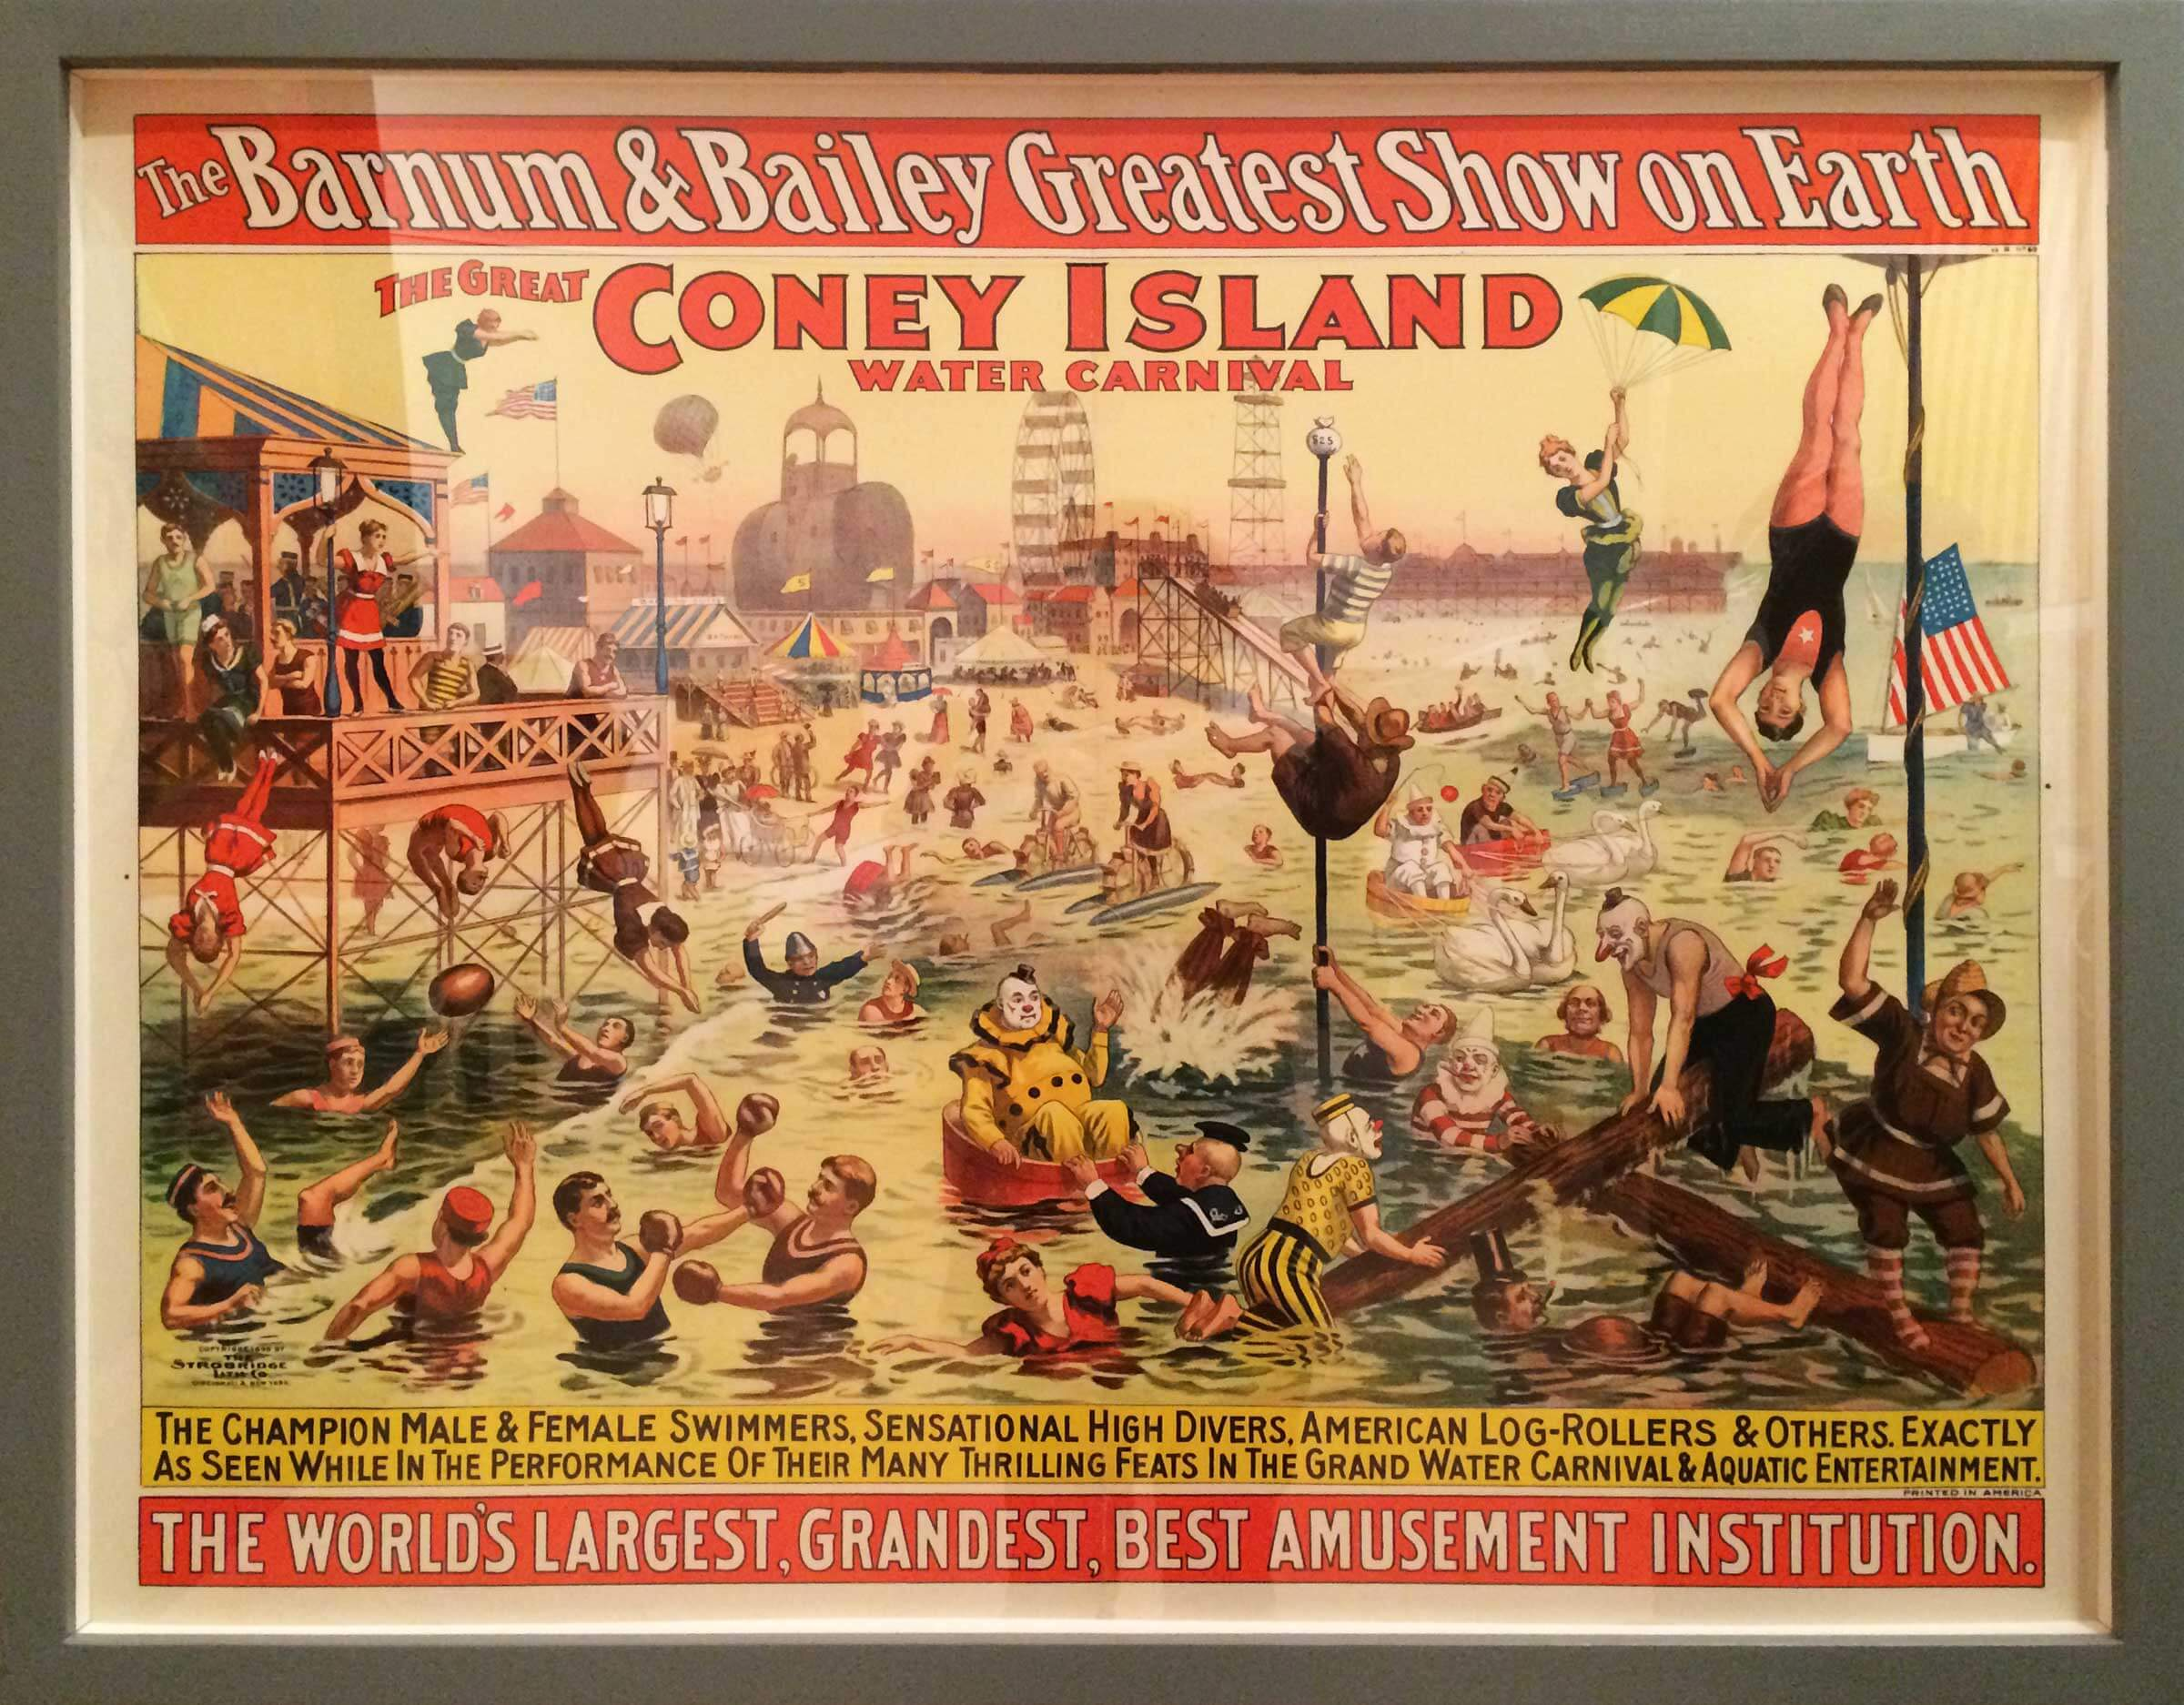 Affiche of The Barnum & Bailey greatest show on earth — The great Coney Island water carnaval.